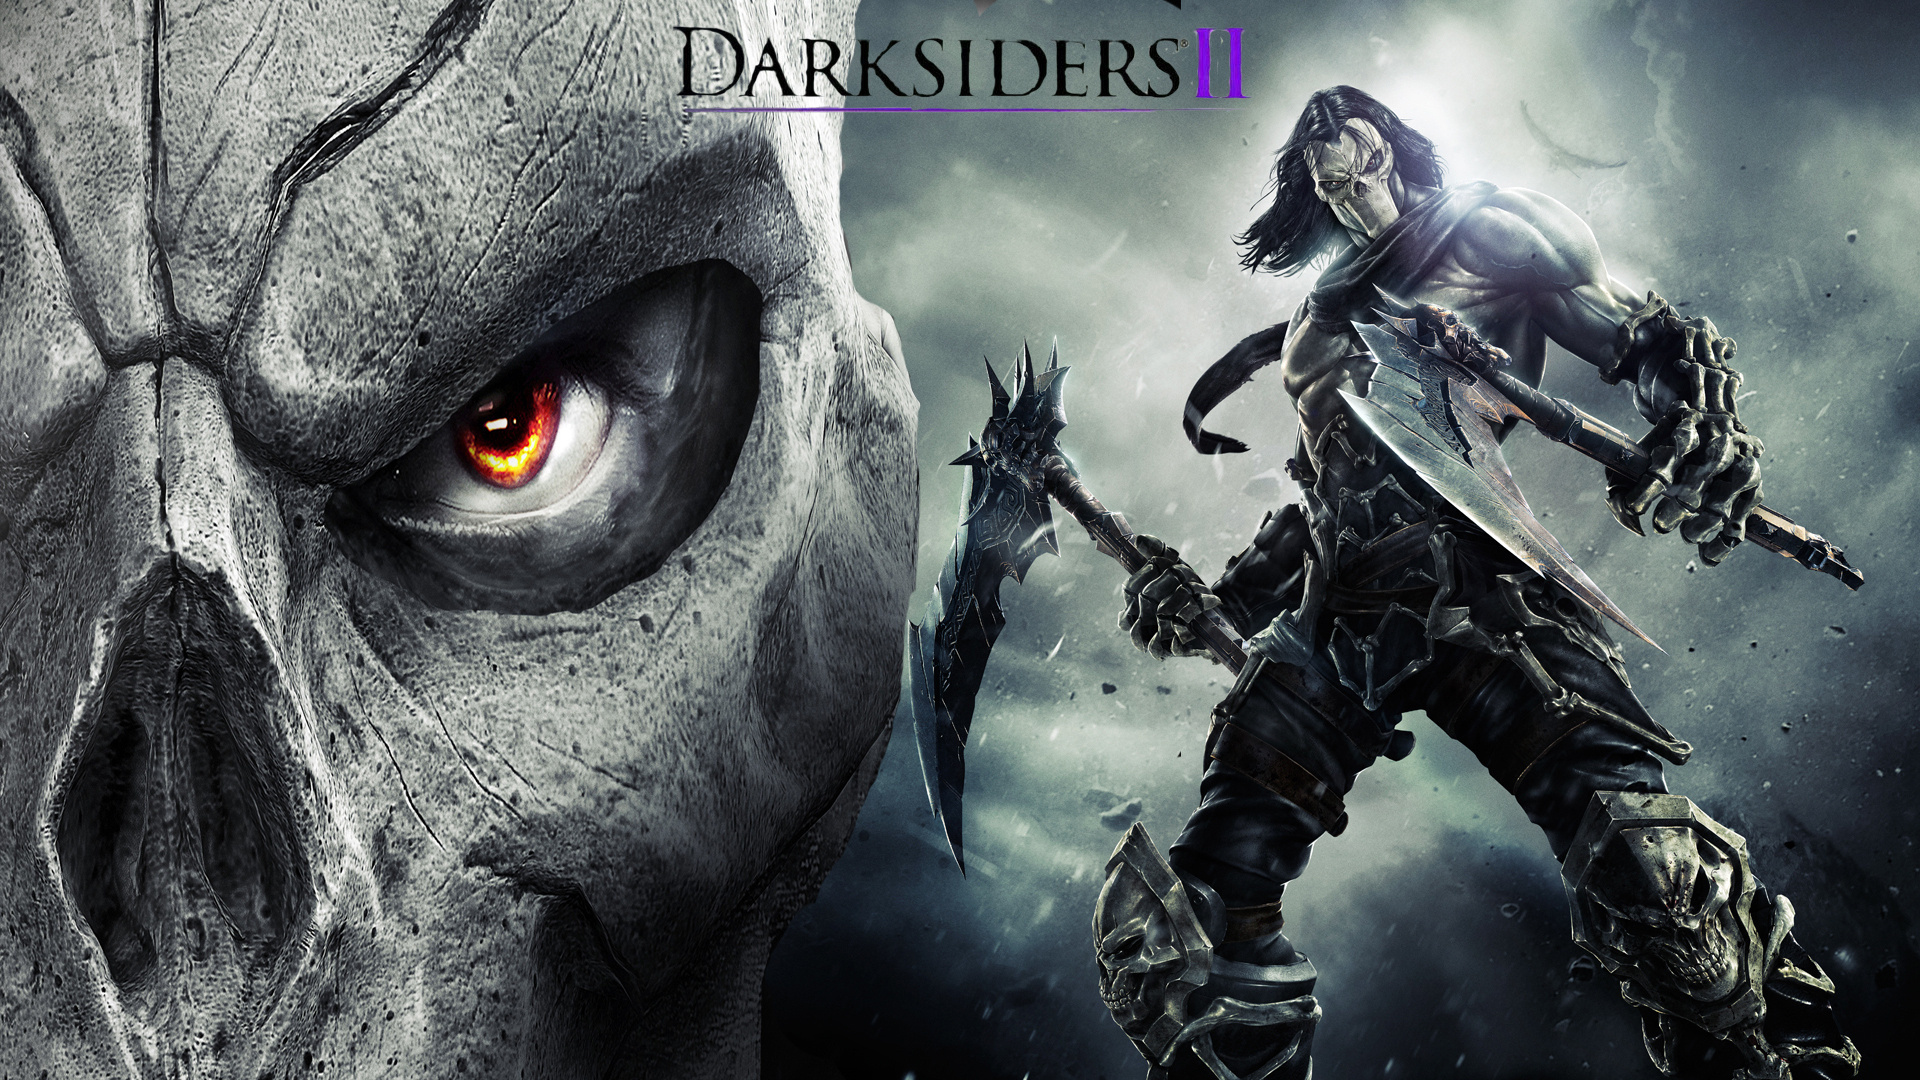 55 Darksiders II Wallpapers | Darksiders II Backgrounds